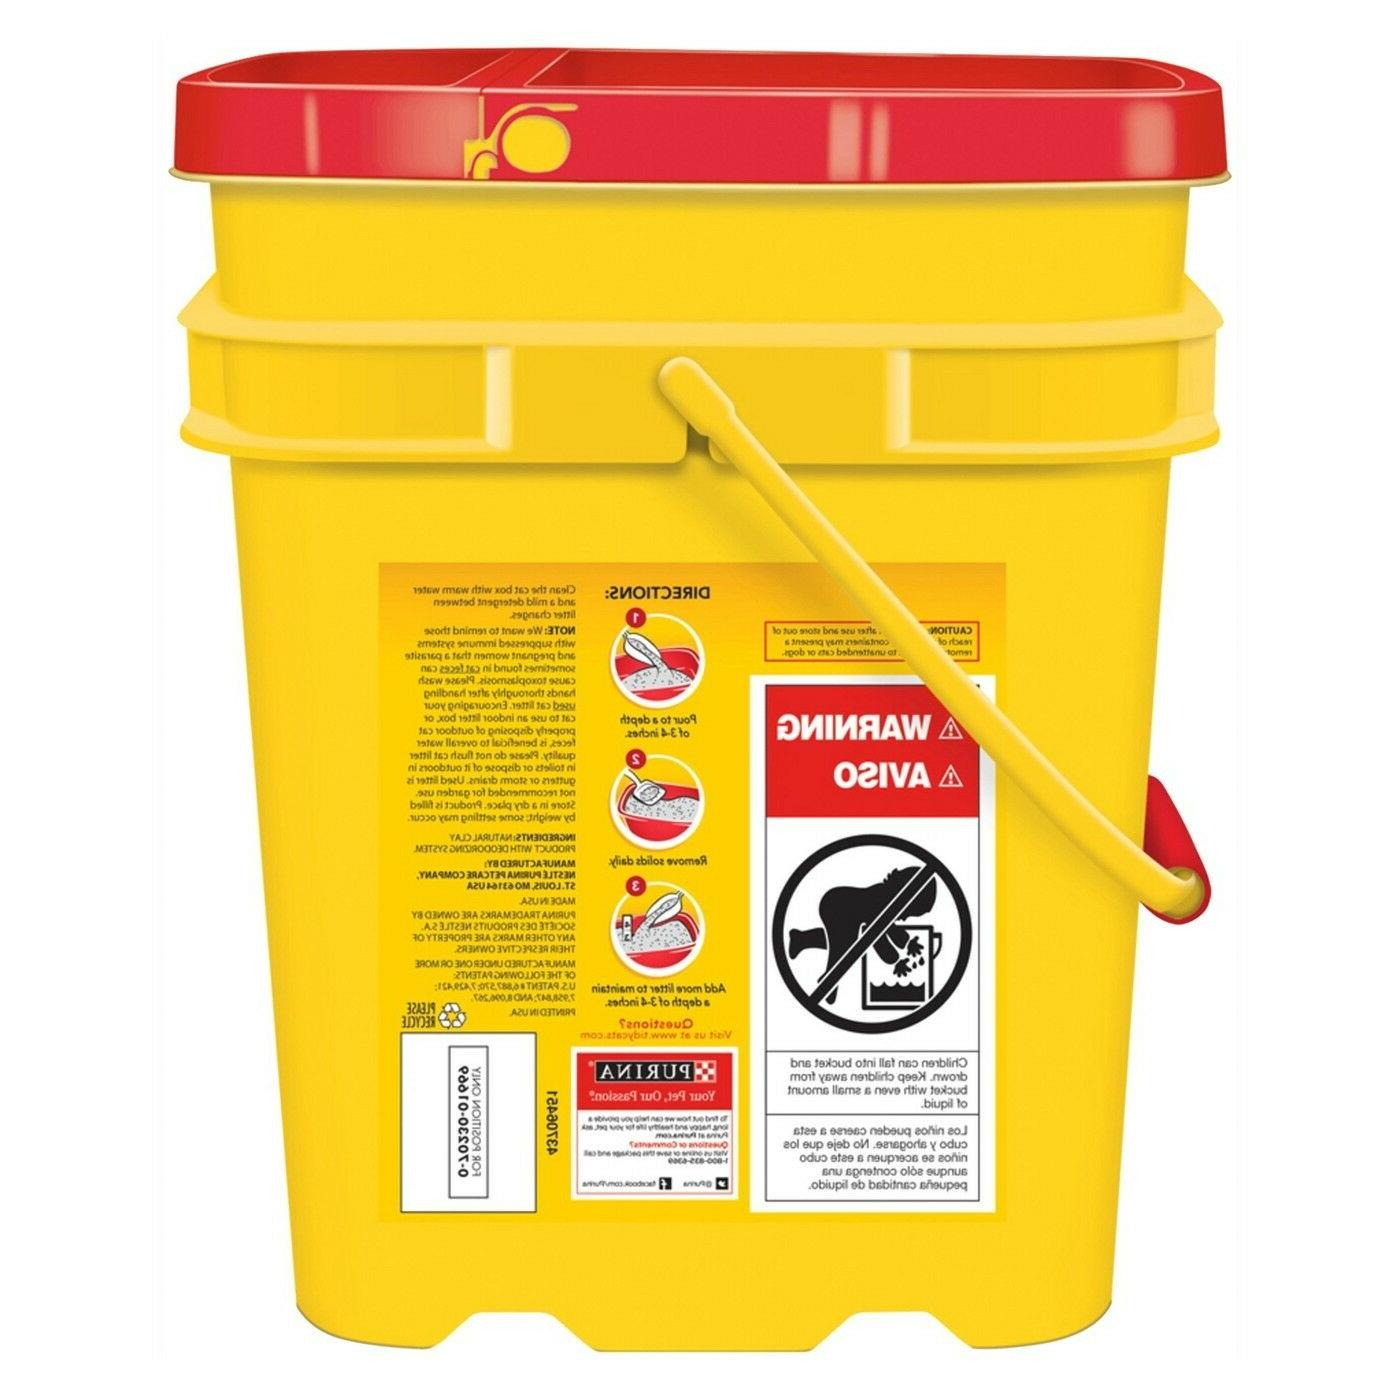 Tidy Cats Litter 24/7 MultipleCats 35lb Pail